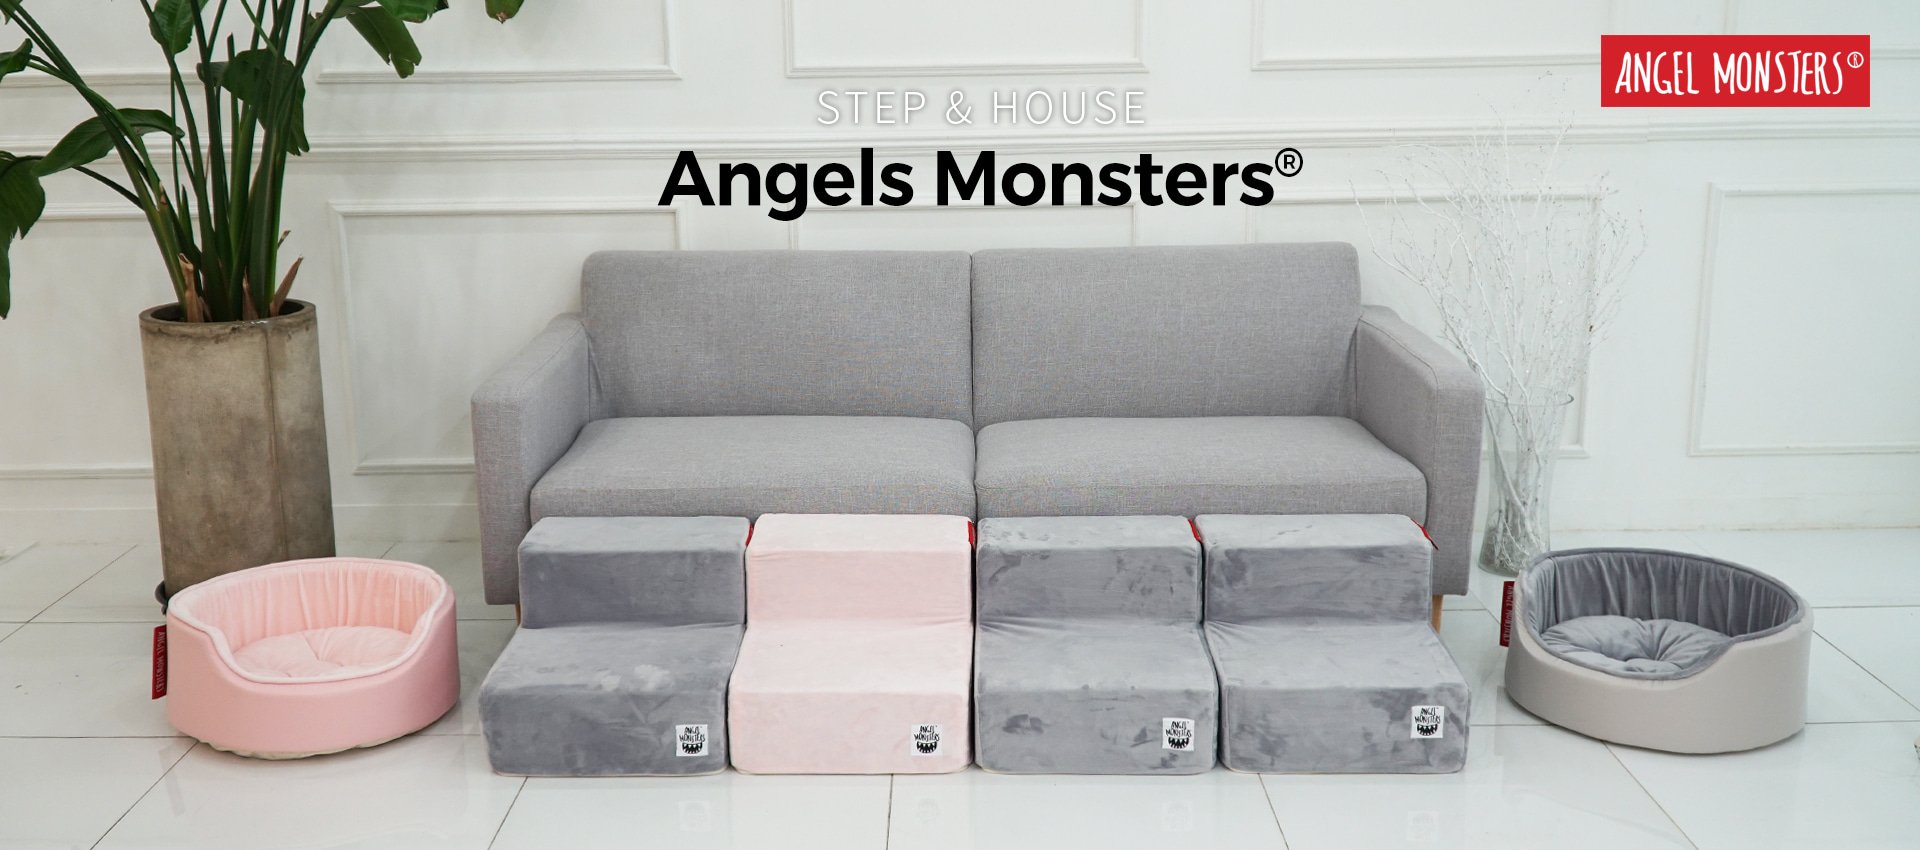 Angel Monsters Steps and Houses